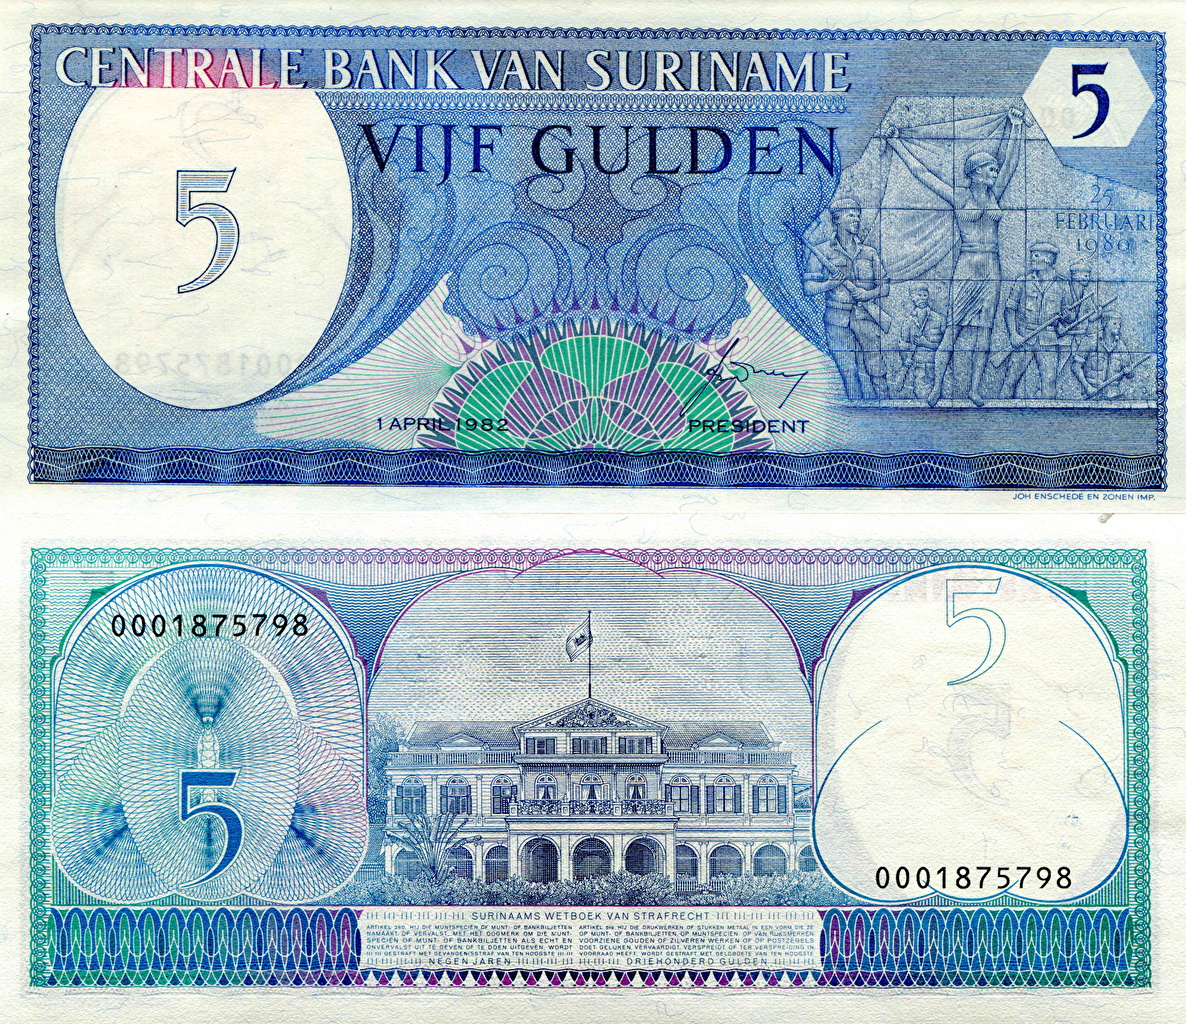 Image Banknotes 5 guilders Suriname Money